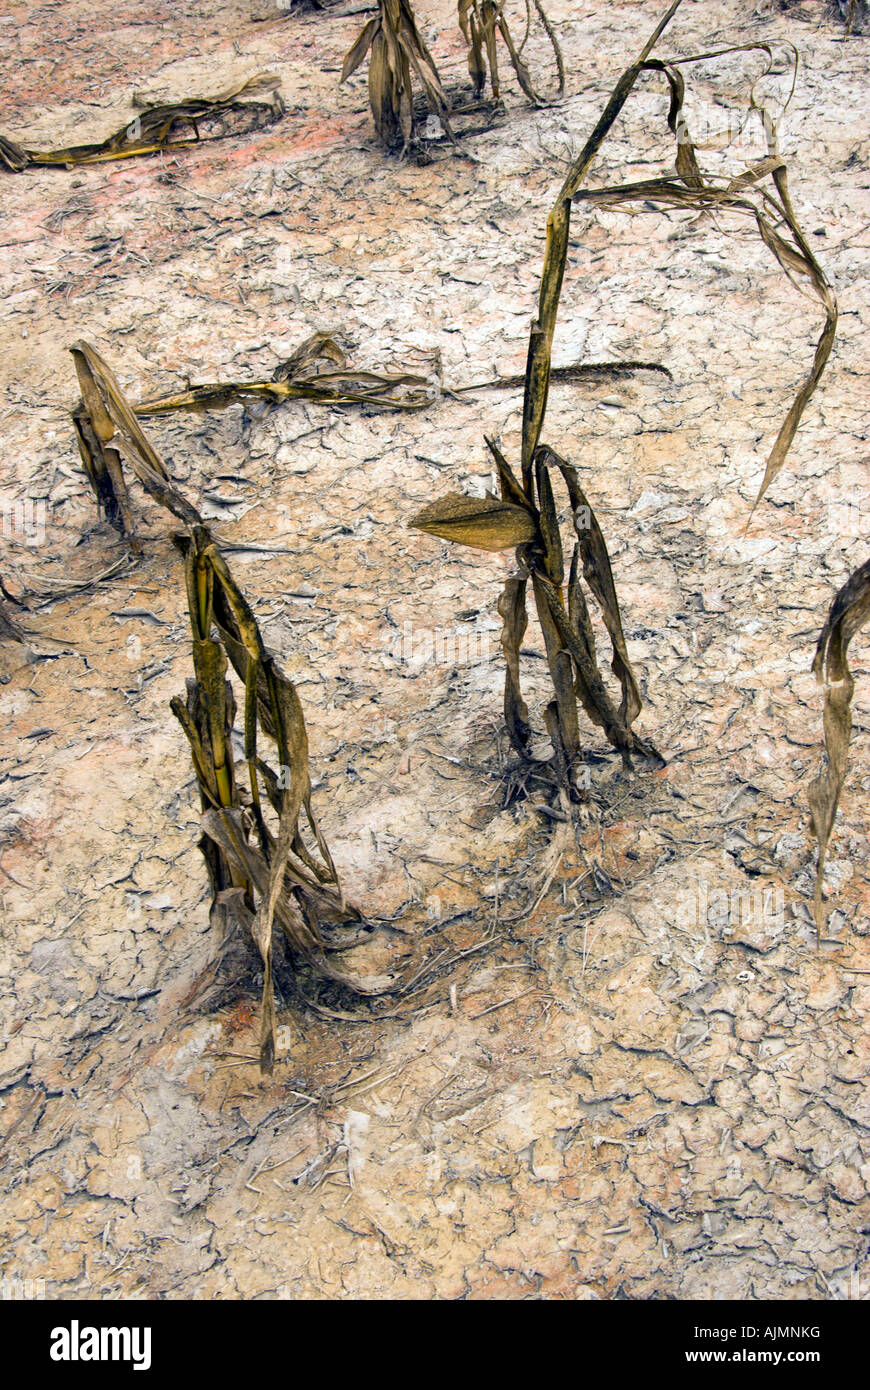 weather, dry, drought, impact, withered corn field stalks, cracked parched earth, ground,   global warming effects, - Stock Image